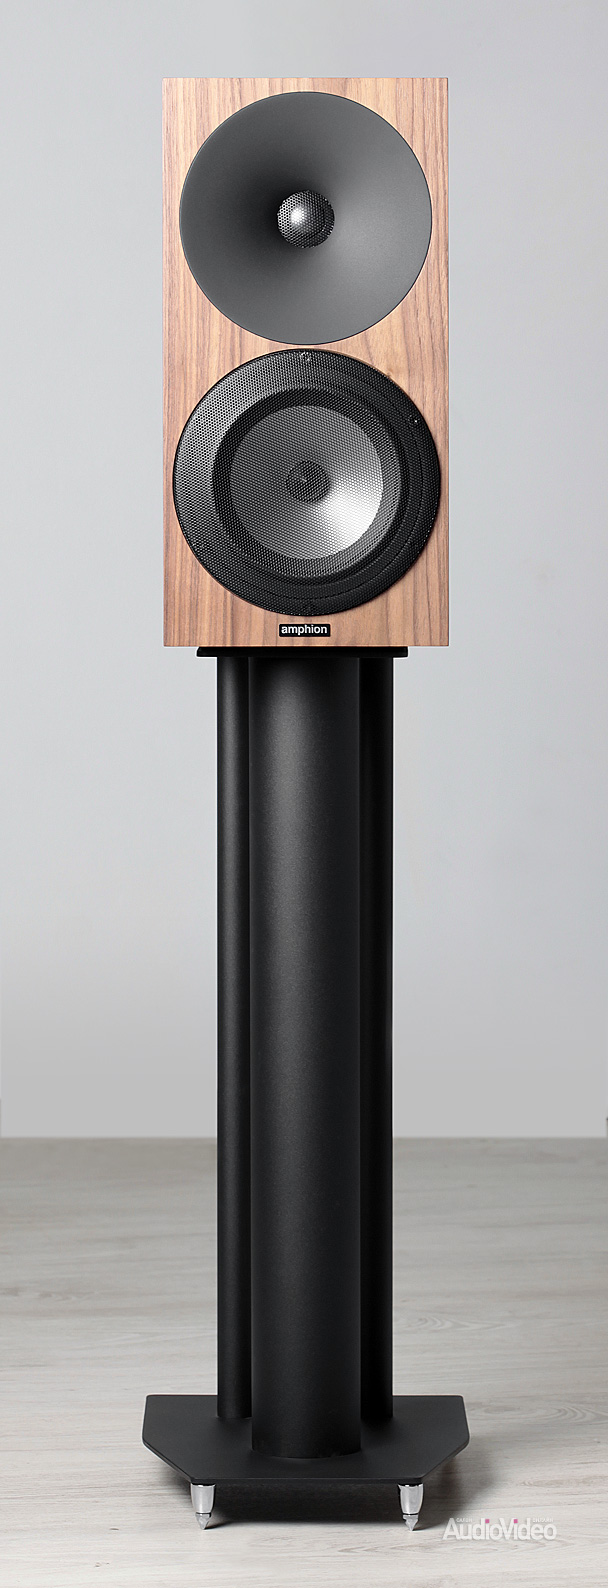 Amphion_Argon_3S_02